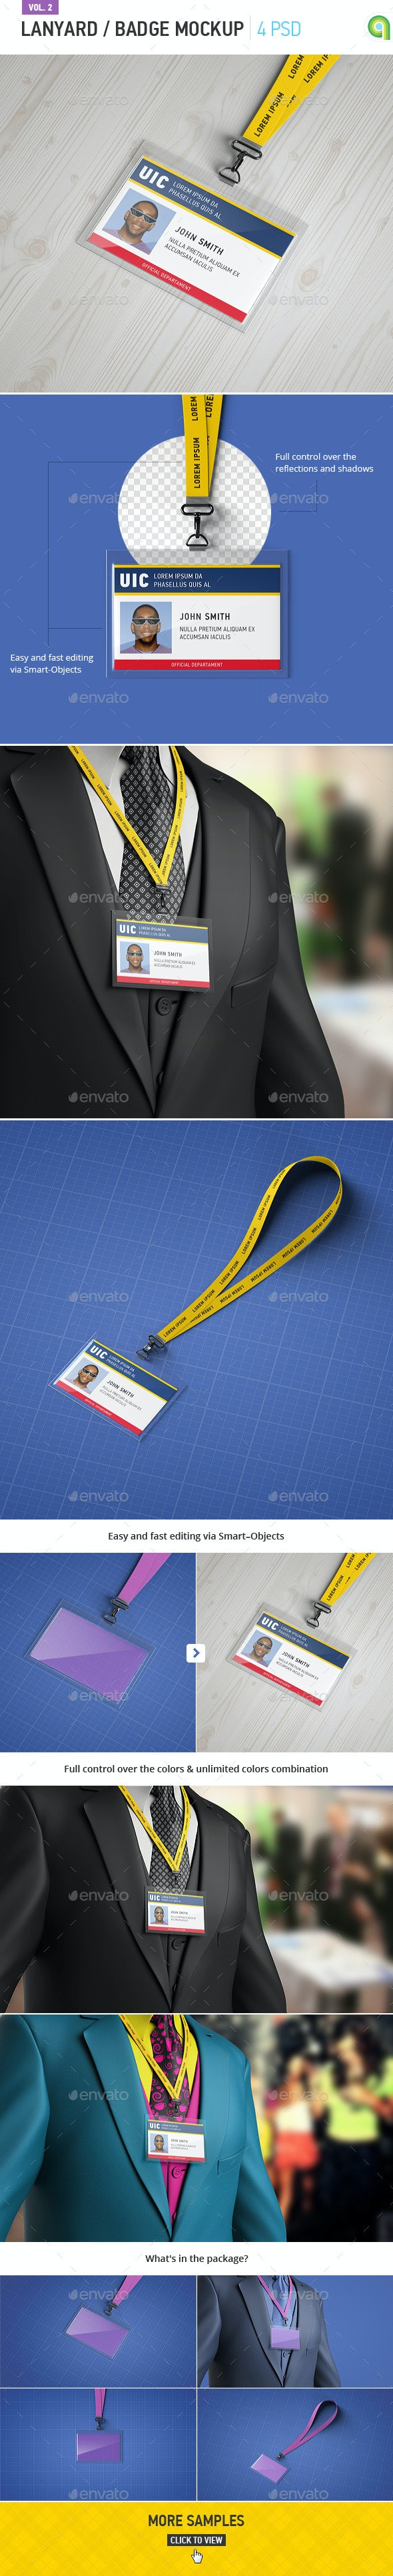 Horizontal Lanyard / Badge Mock-up - Stationery Print